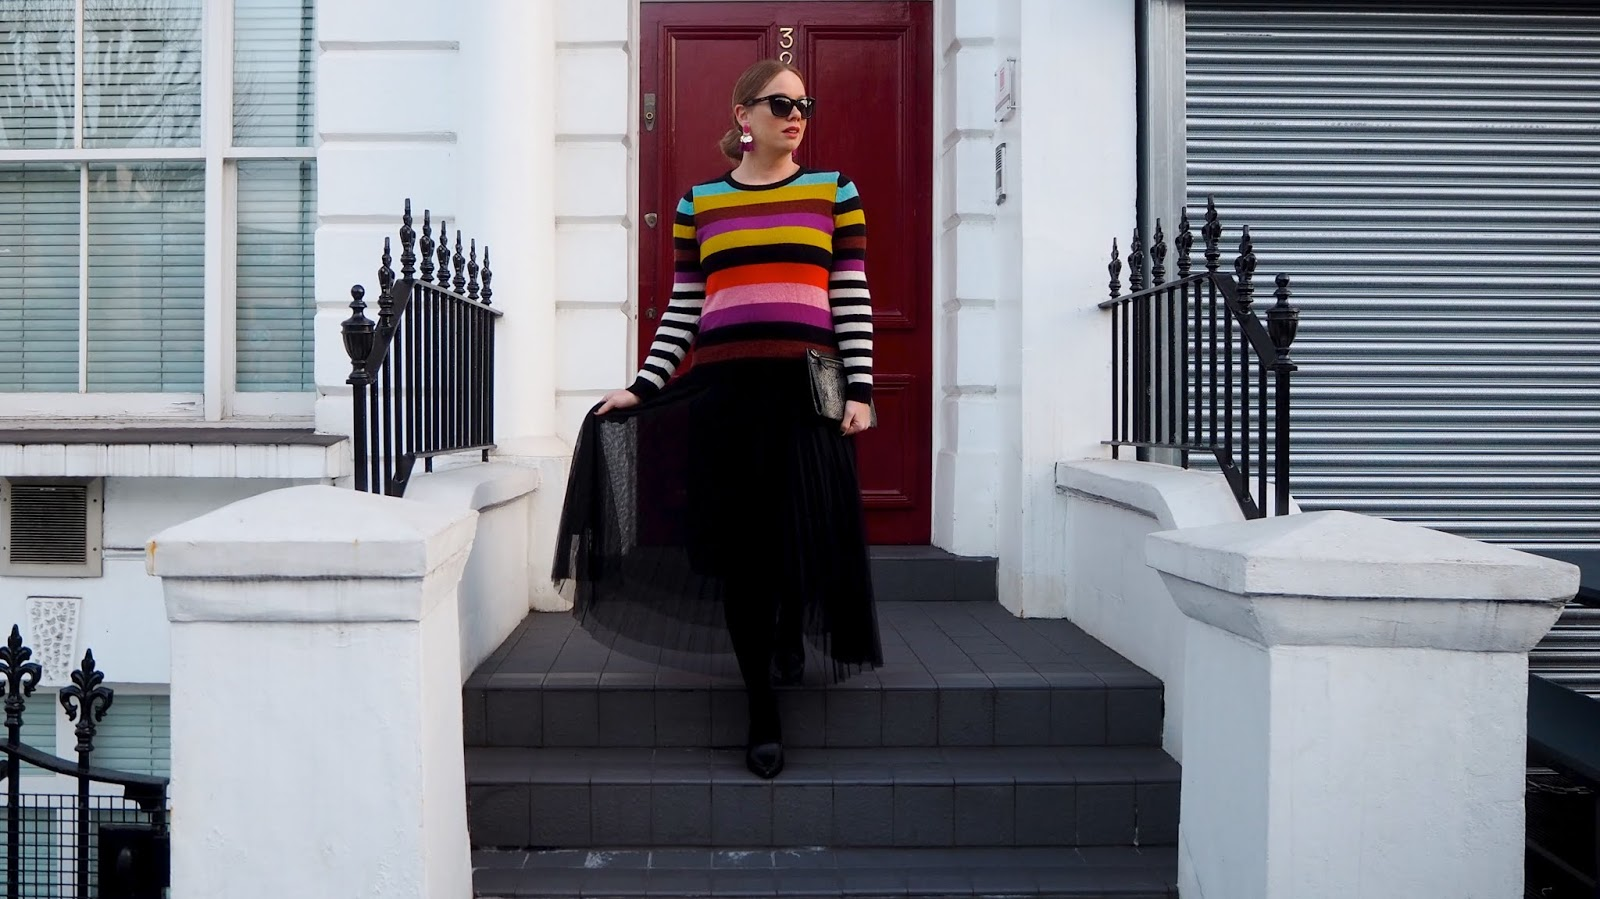 Rainbow stripe sweater, black pleated tulle skirt, black tights, black pointed toe shoes and snakeskin clutch